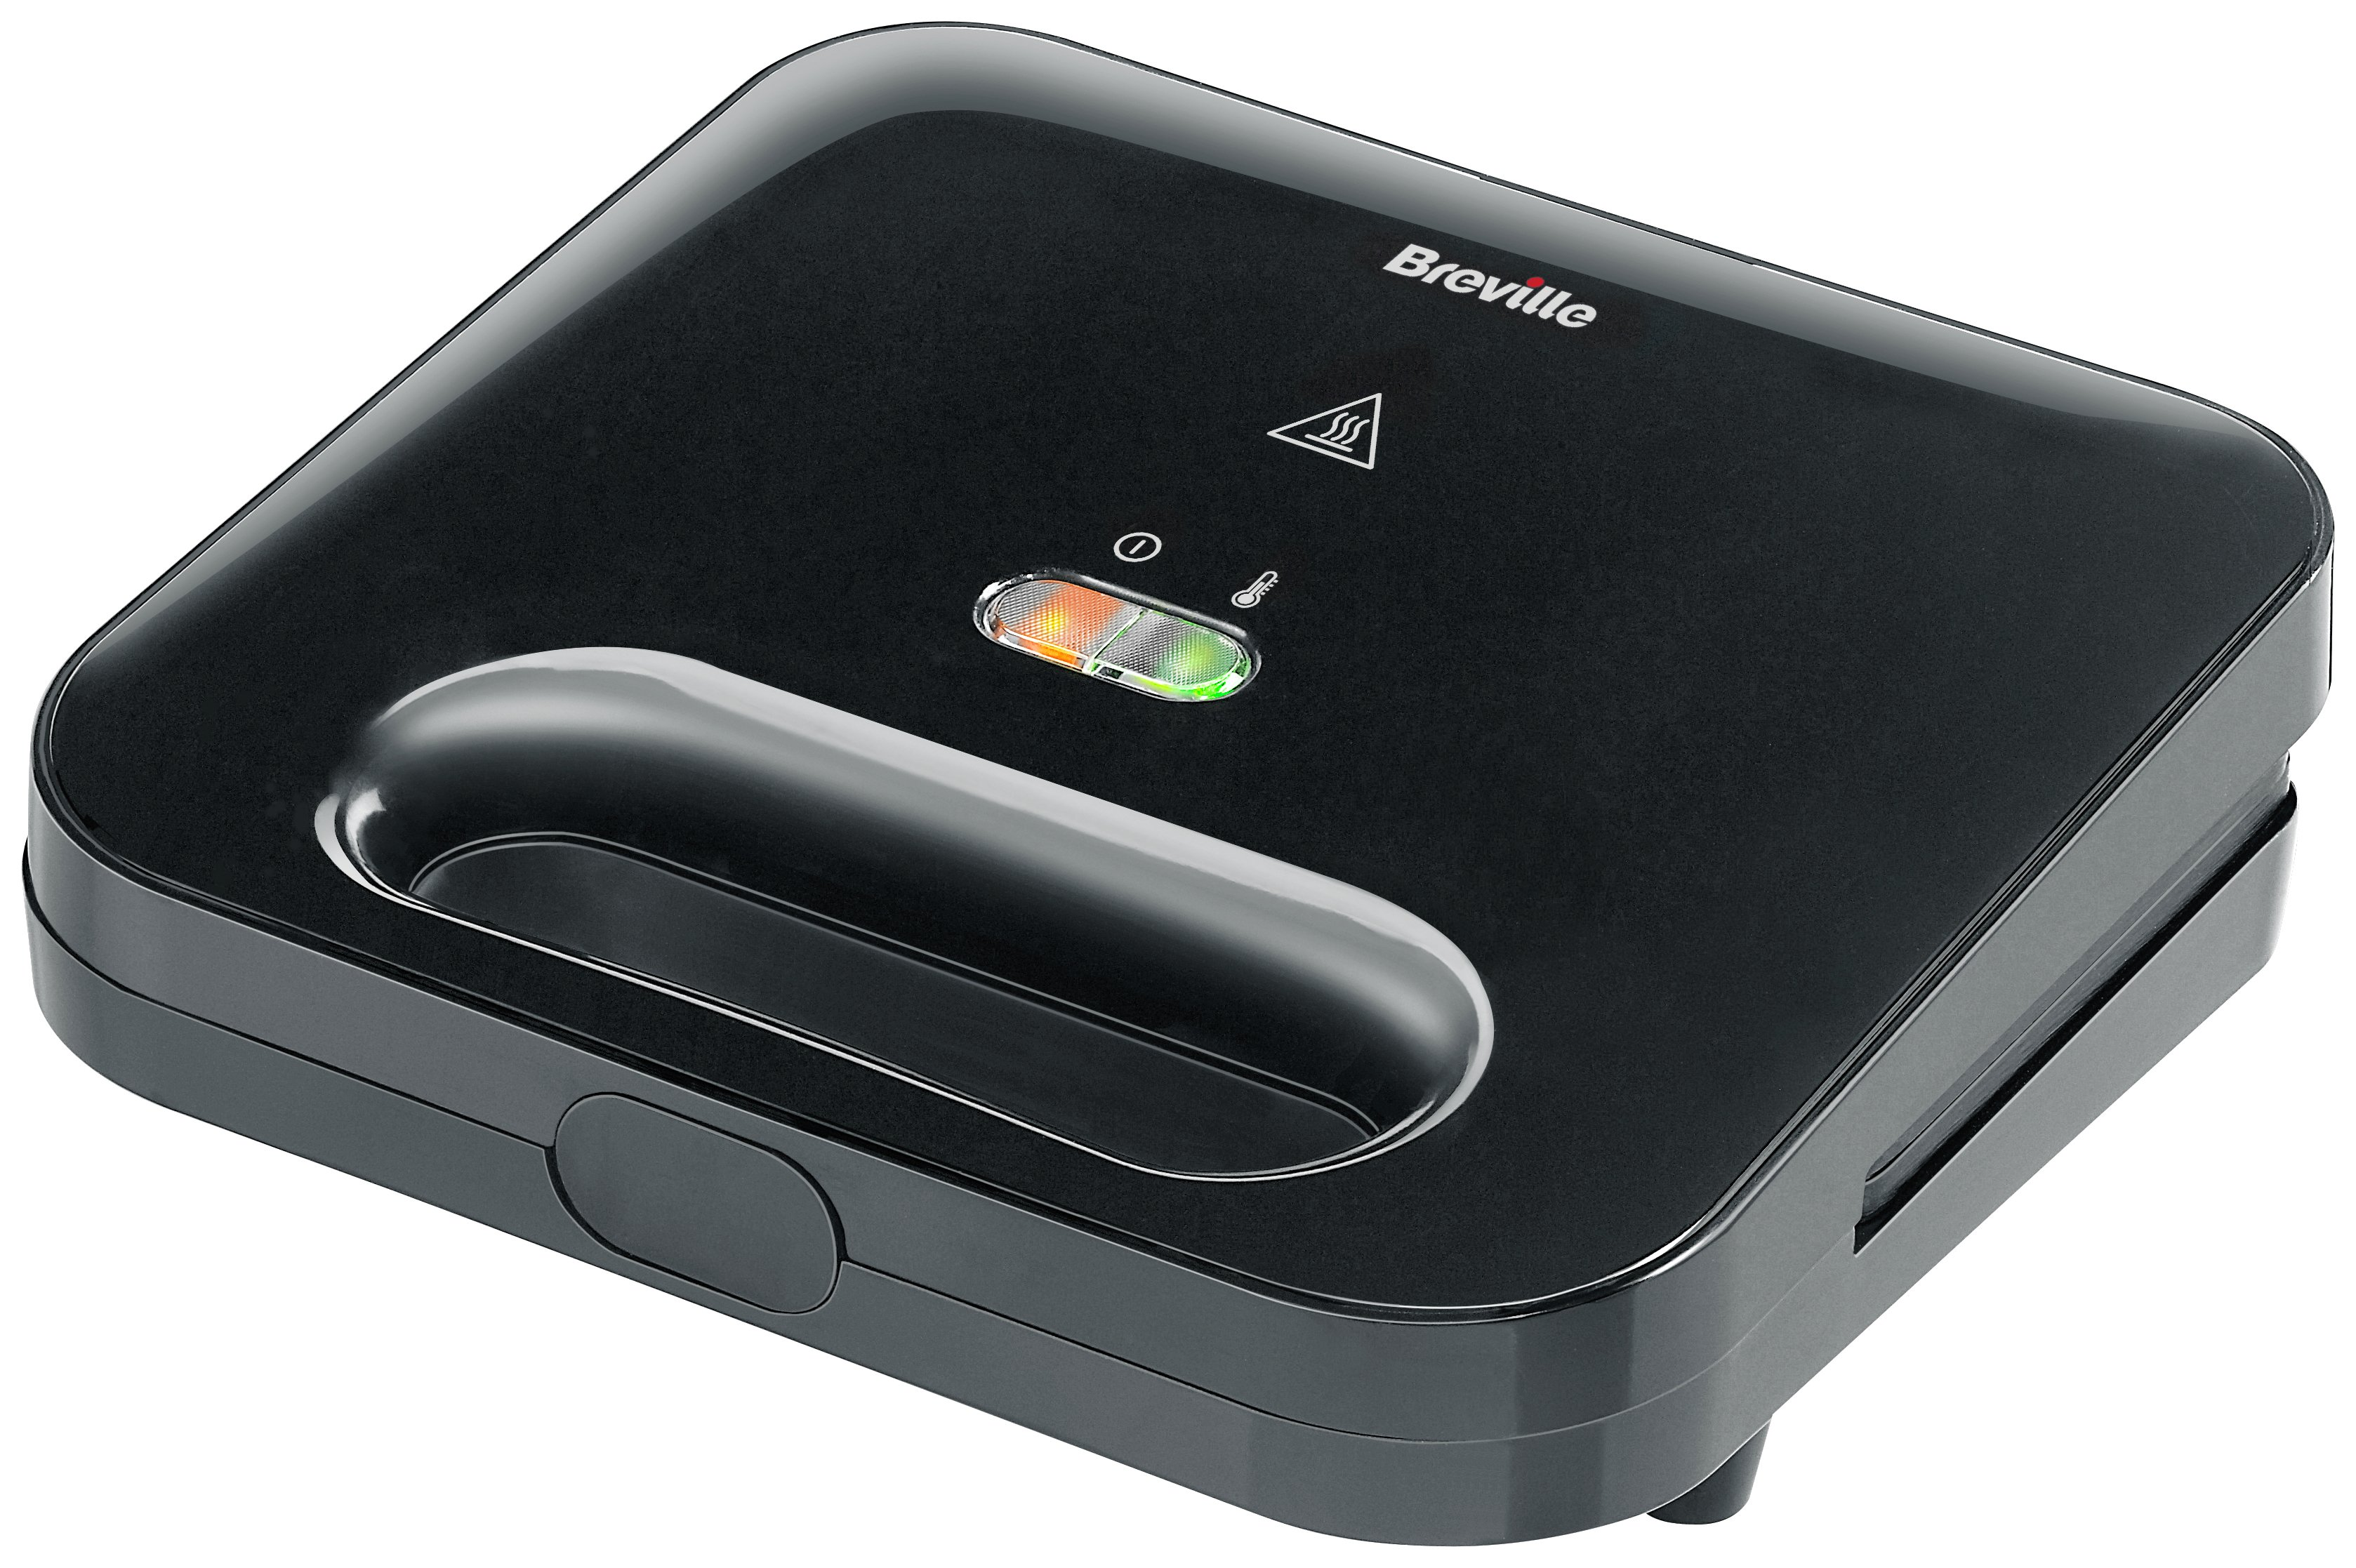 Image of Breville - Toaster - VST057 - 2 Slice Sandwich Toaster - Black